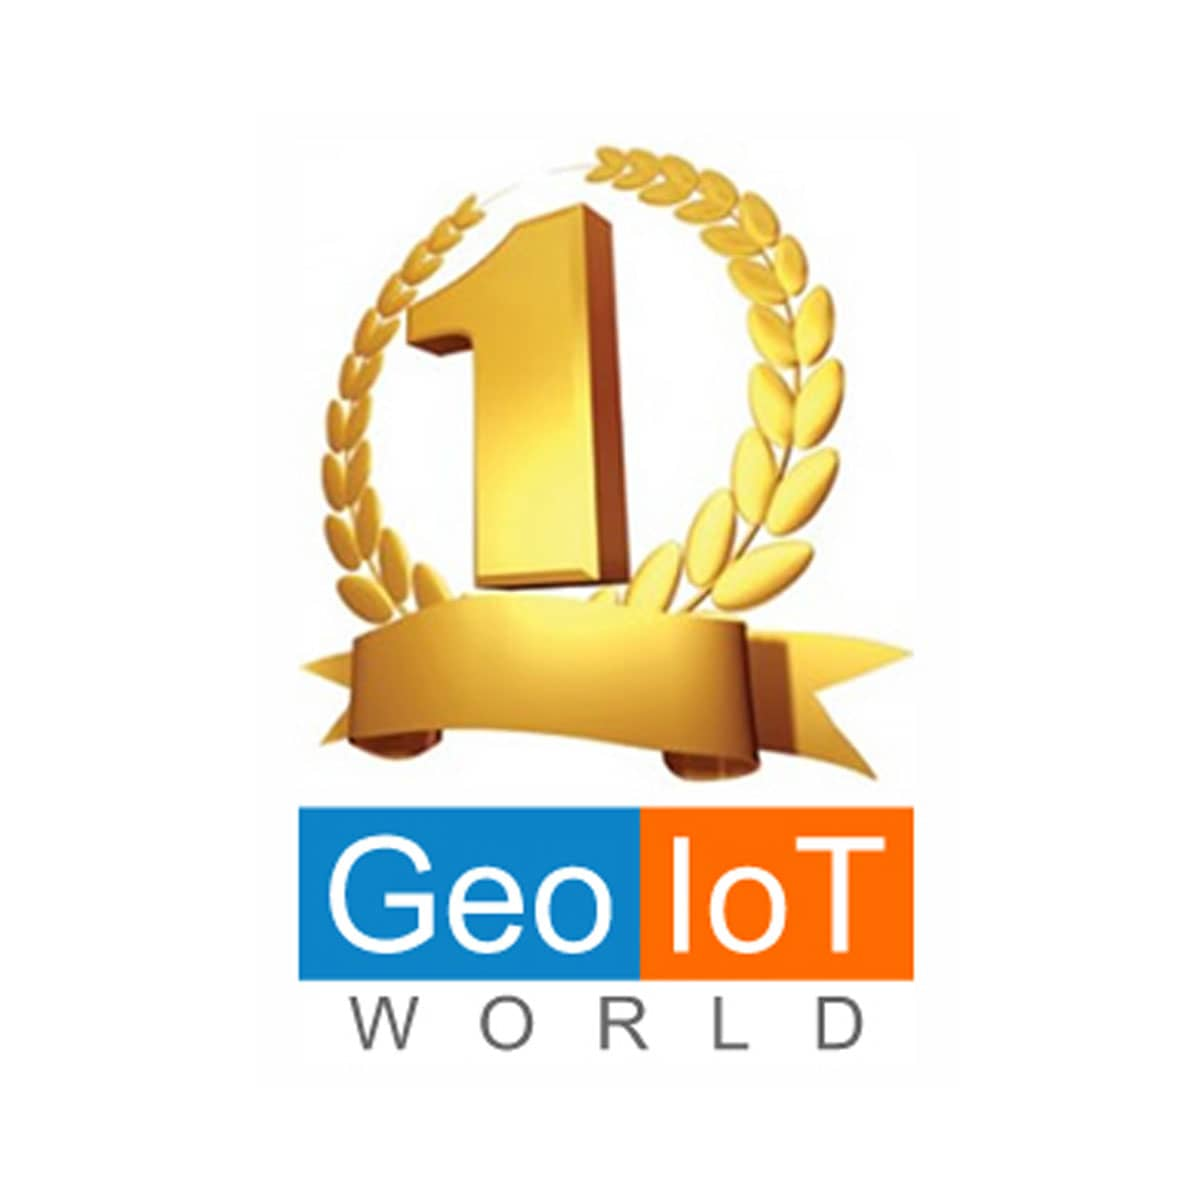 GeoIoT world award as best innovation for asset tracking